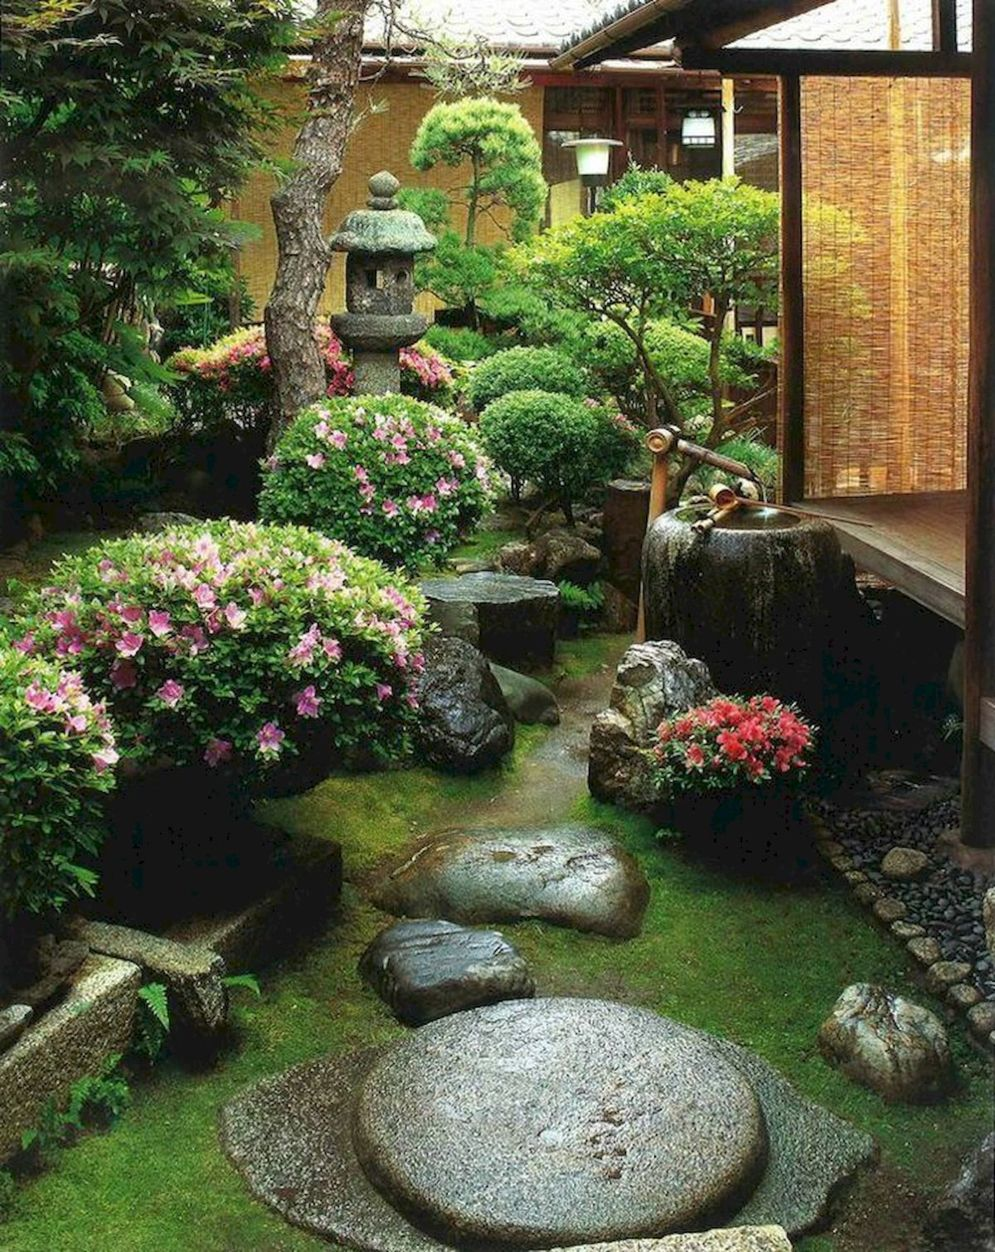 Green outdoor ideas with calming vibes from Zen garden style showing harmonious and balanced various natural elements Image 44